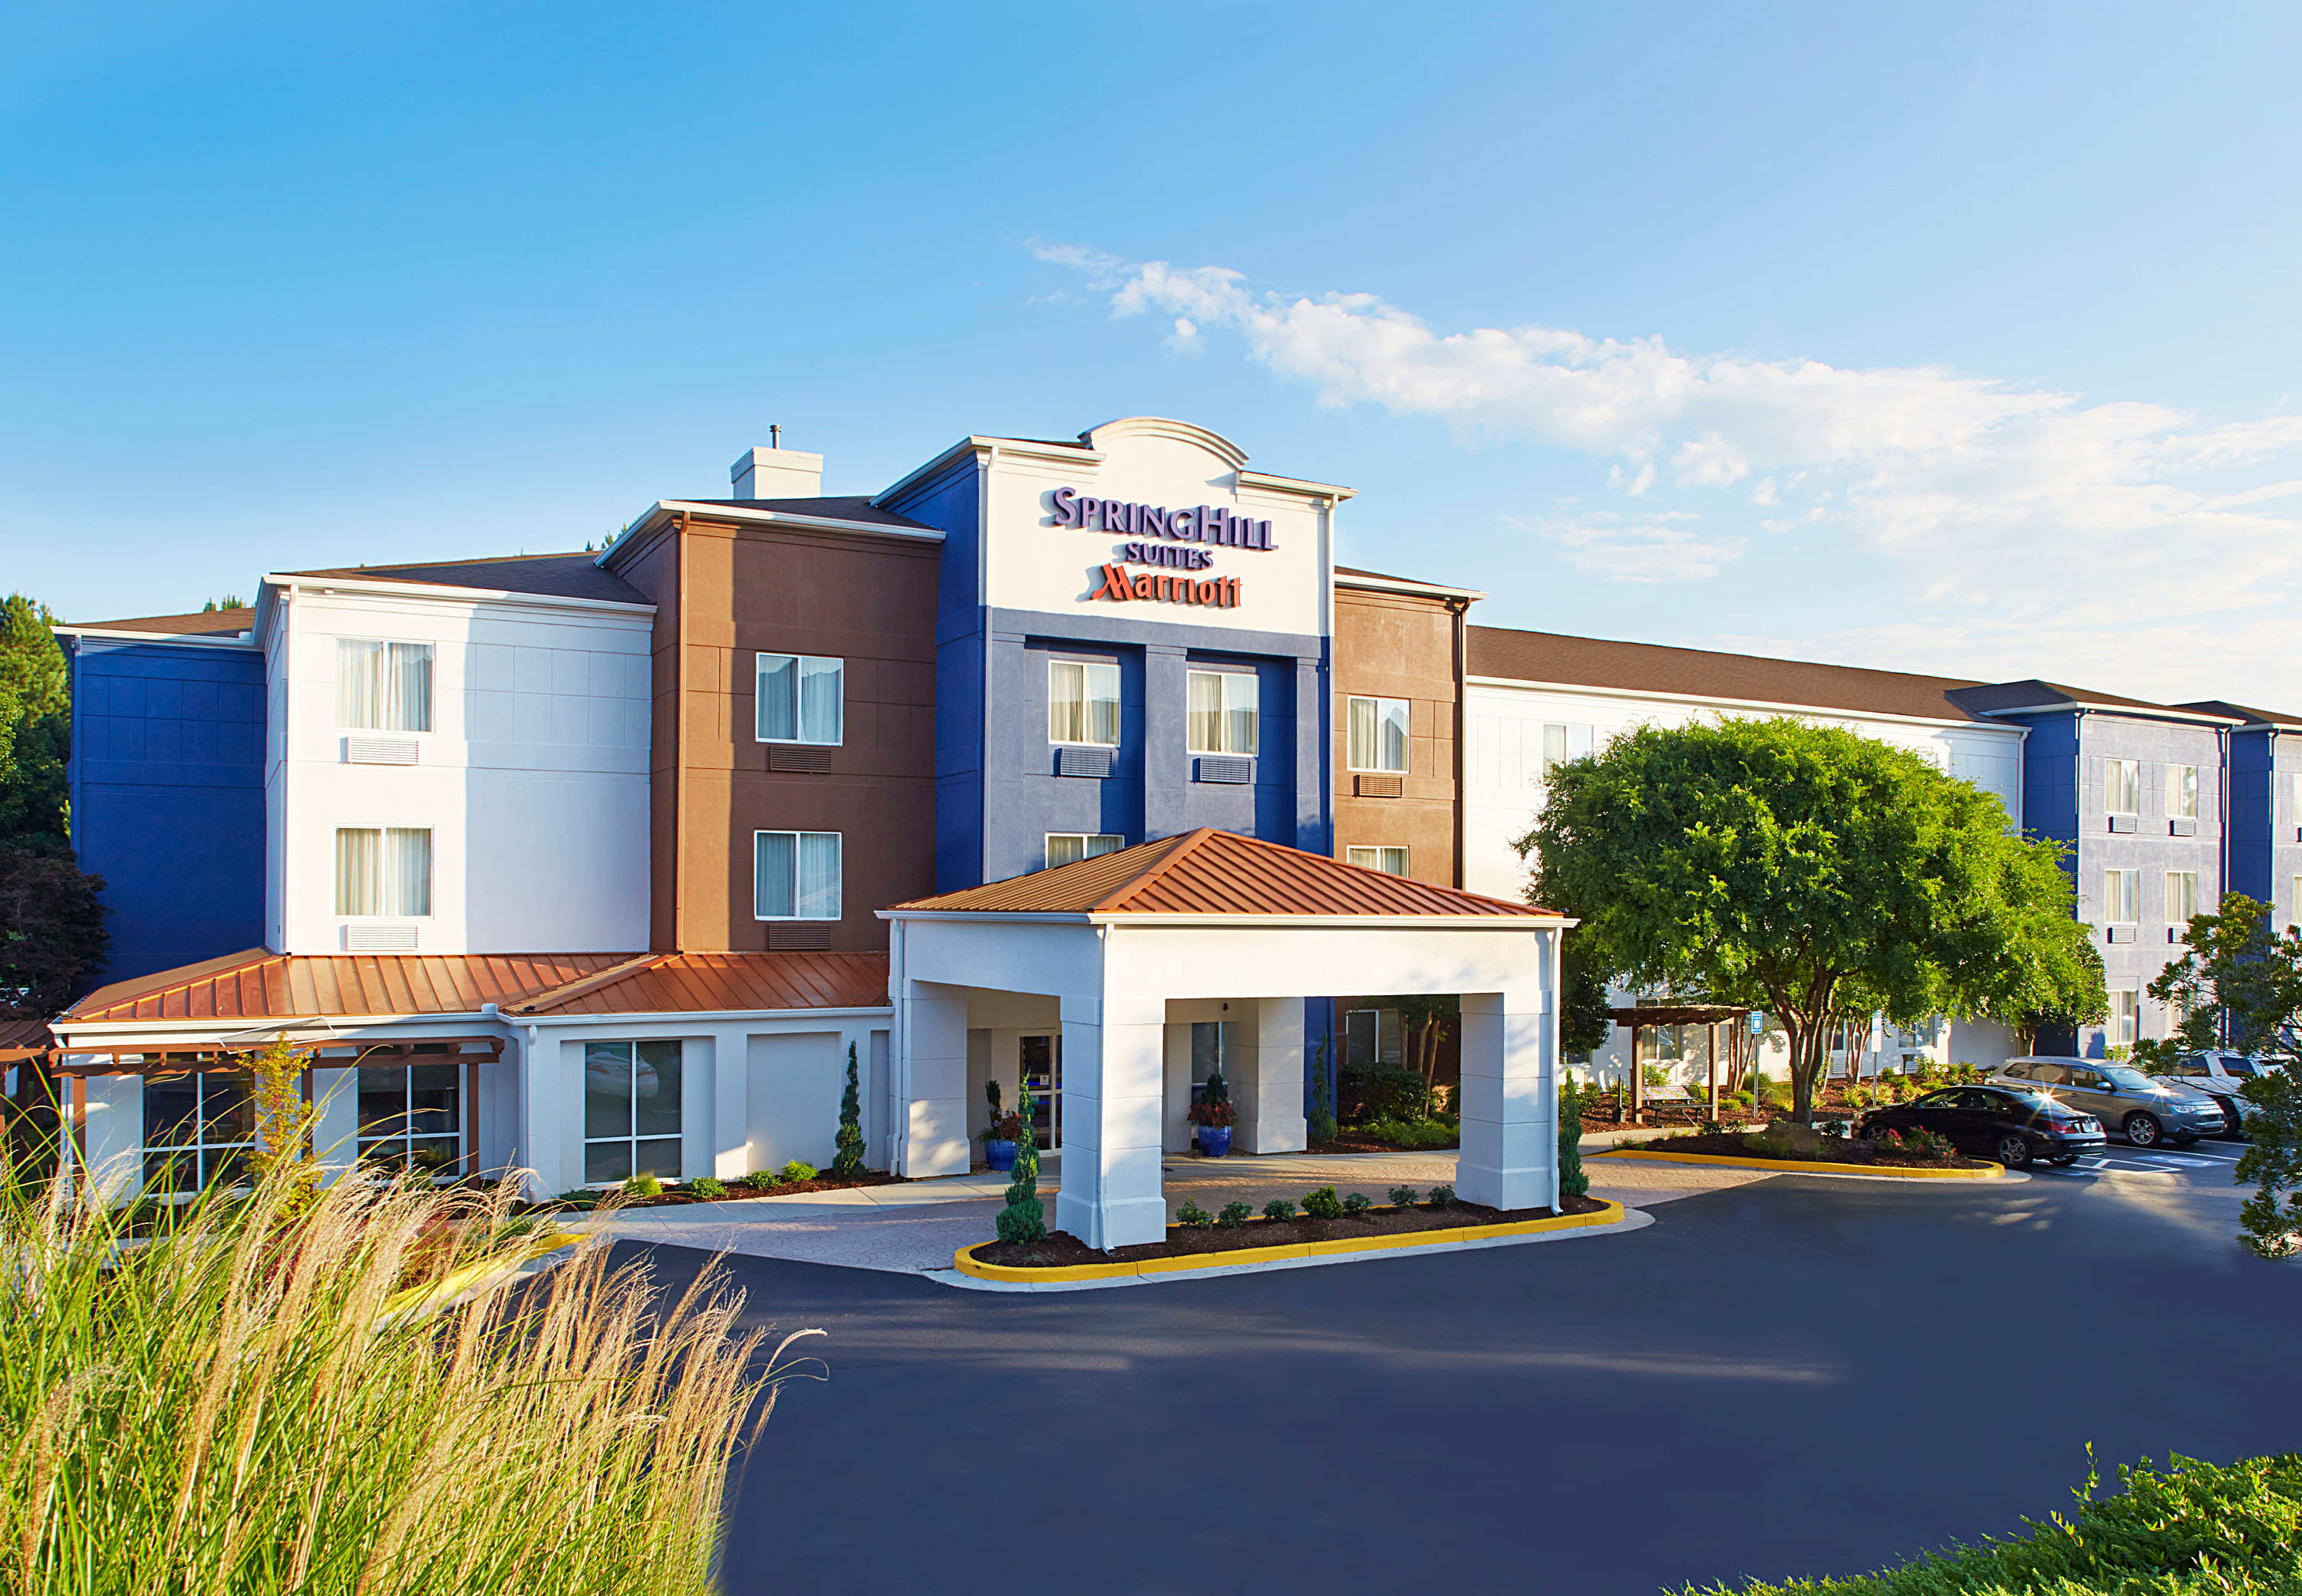 SpringHill Suites by Marriott Atlanta Six Flags image 1